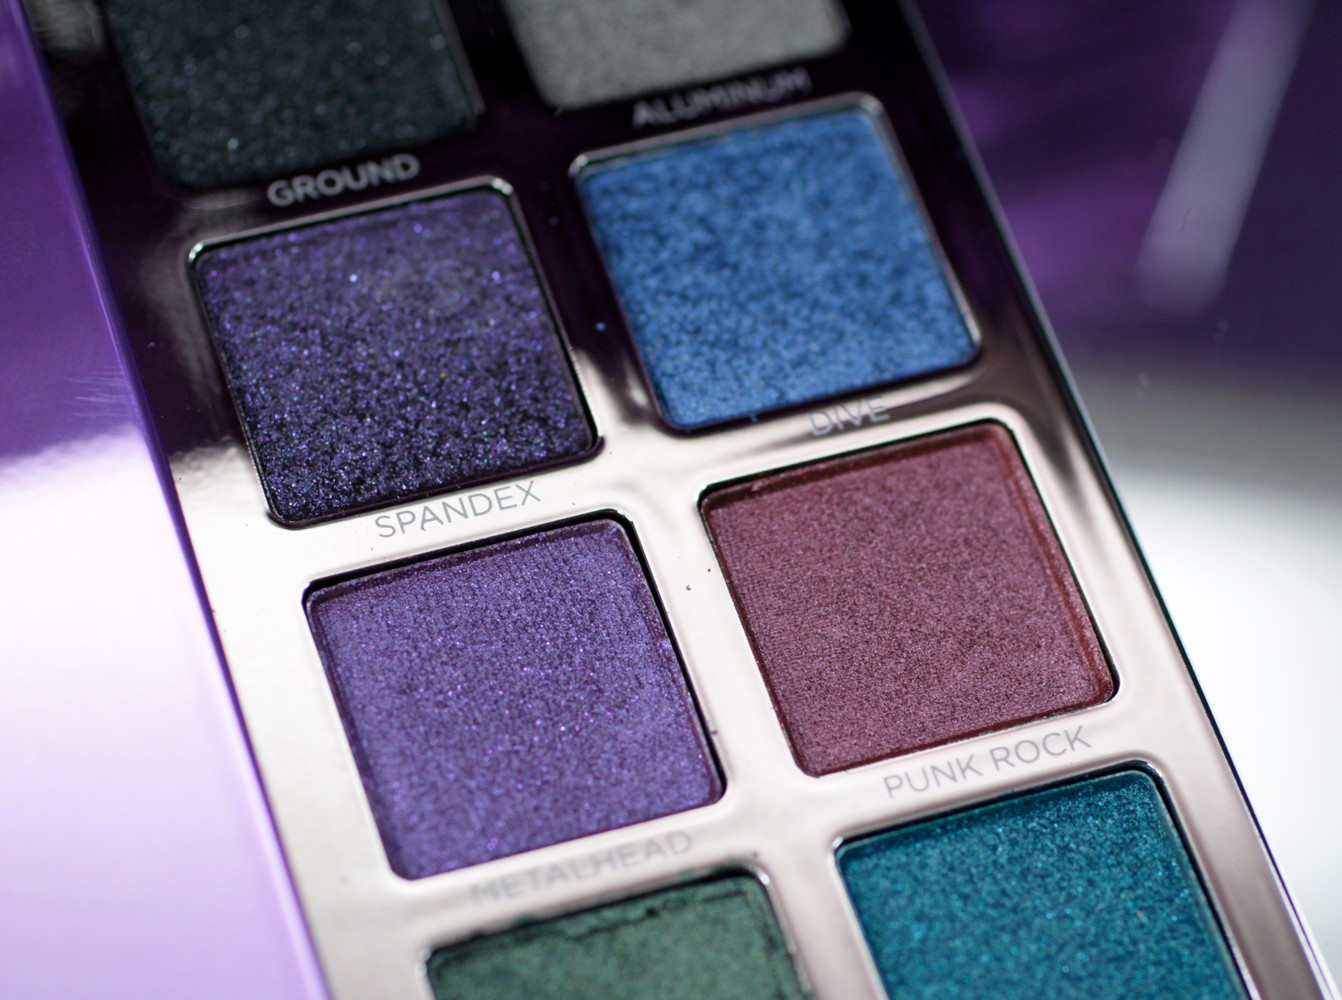 Urban Decay Heavy Metals Eyeshadow Palette - Spandex Dive Metalhead Punkrock  - Urban Decay Heavy Metals Palette review by popular Los Angeles cruelty free beauty blogger My Beauty Bunny